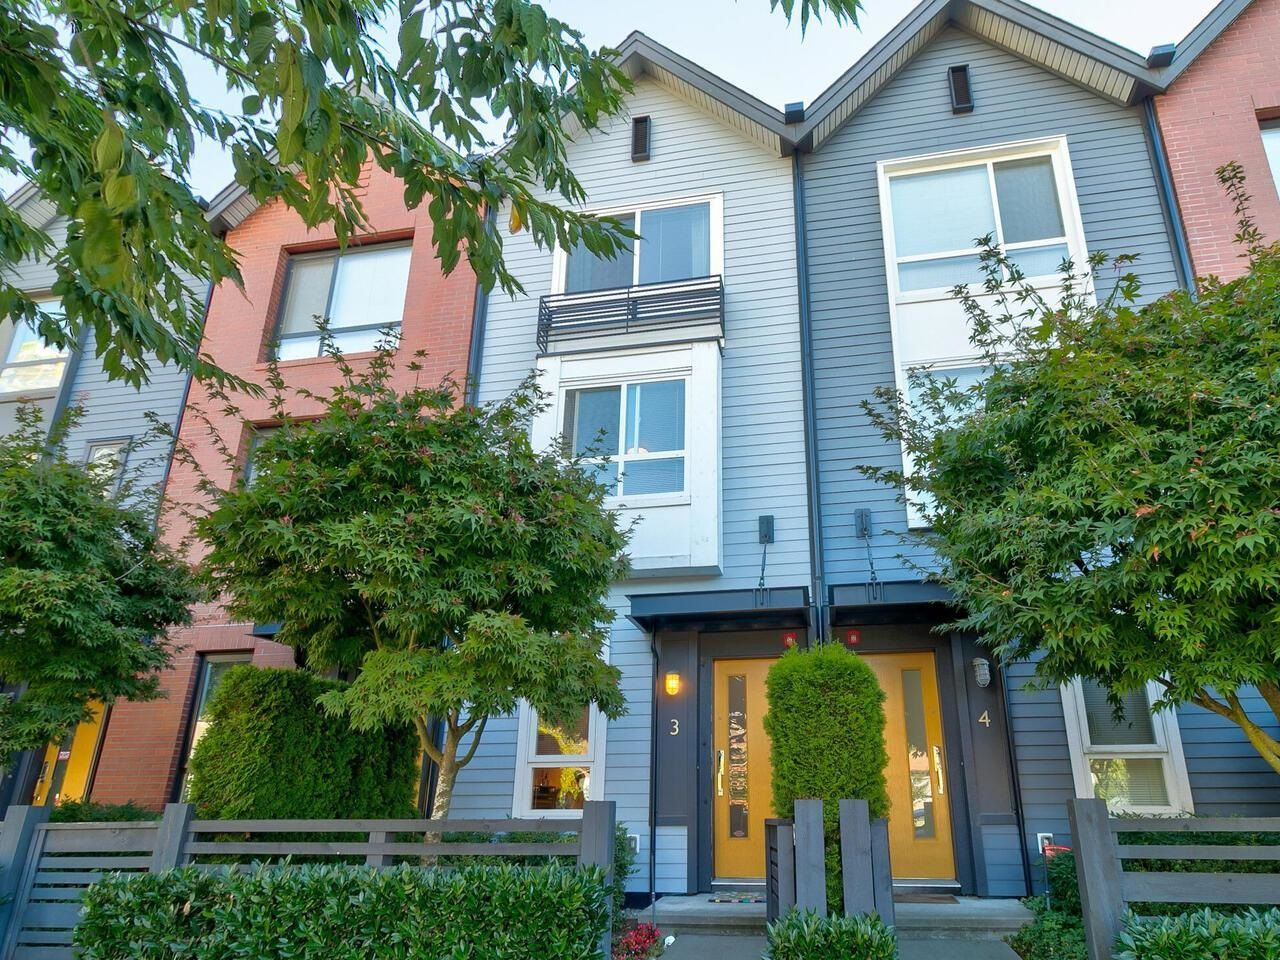 Main Photo: 3 6868 BURLINGTON Avenue in Burnaby: Metrotown Townhouse for sale (Burnaby South)  : MLS®# R2615606